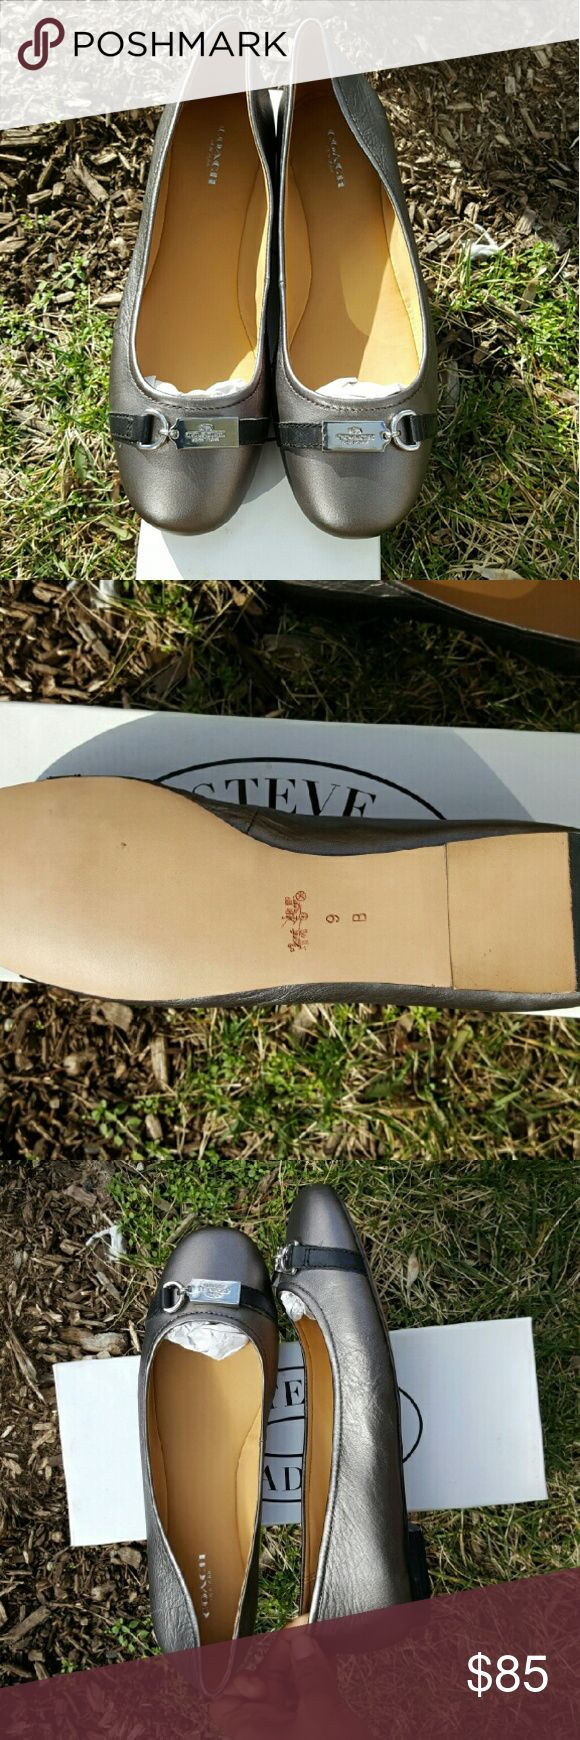 NWOT Coach Flats New pewter coach flats no box or tags Coach Shoes Flats & Loafers